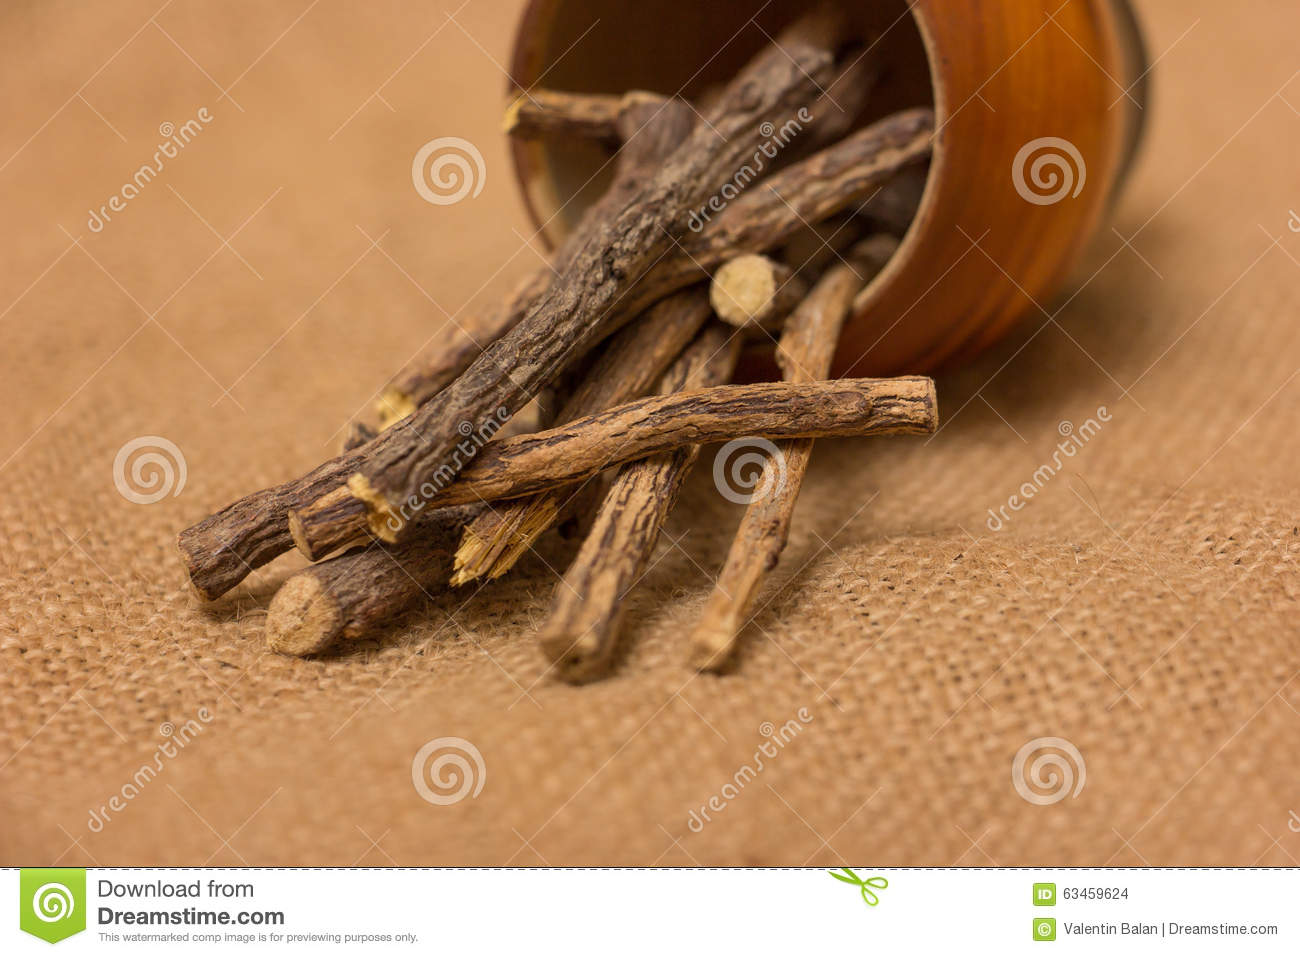 how to make licorice root powder at home